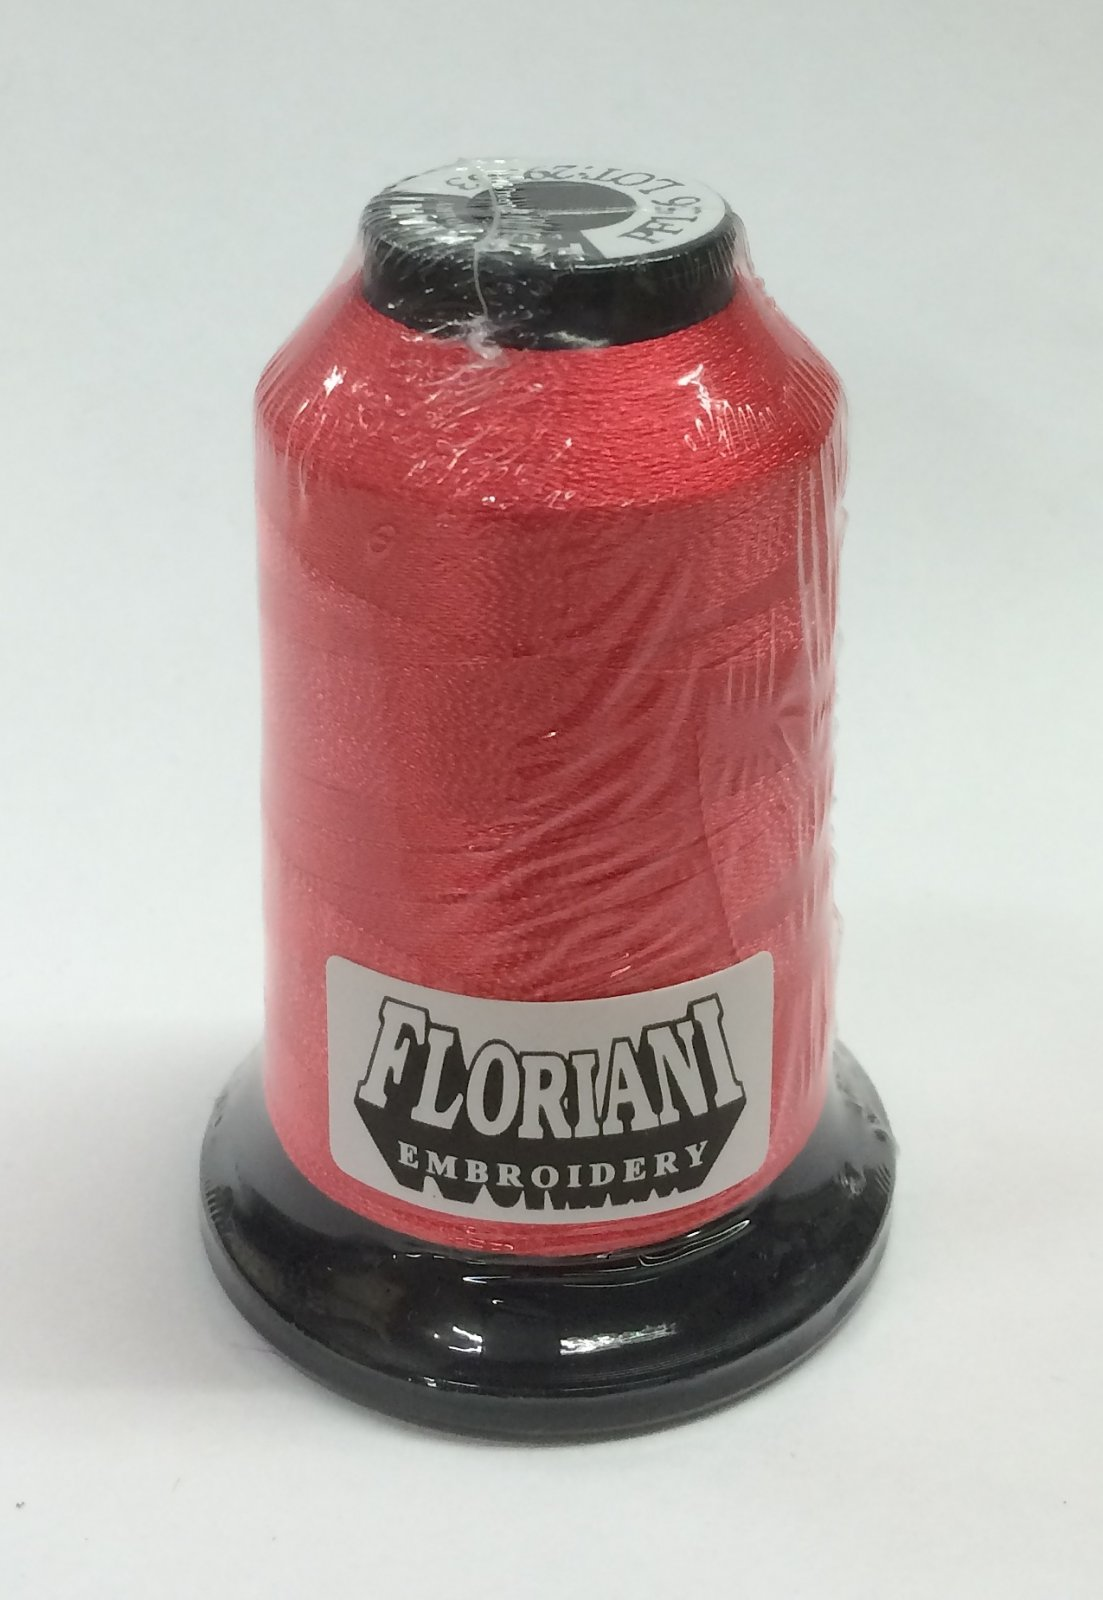 Floriani Embroidery Thread Color #0156